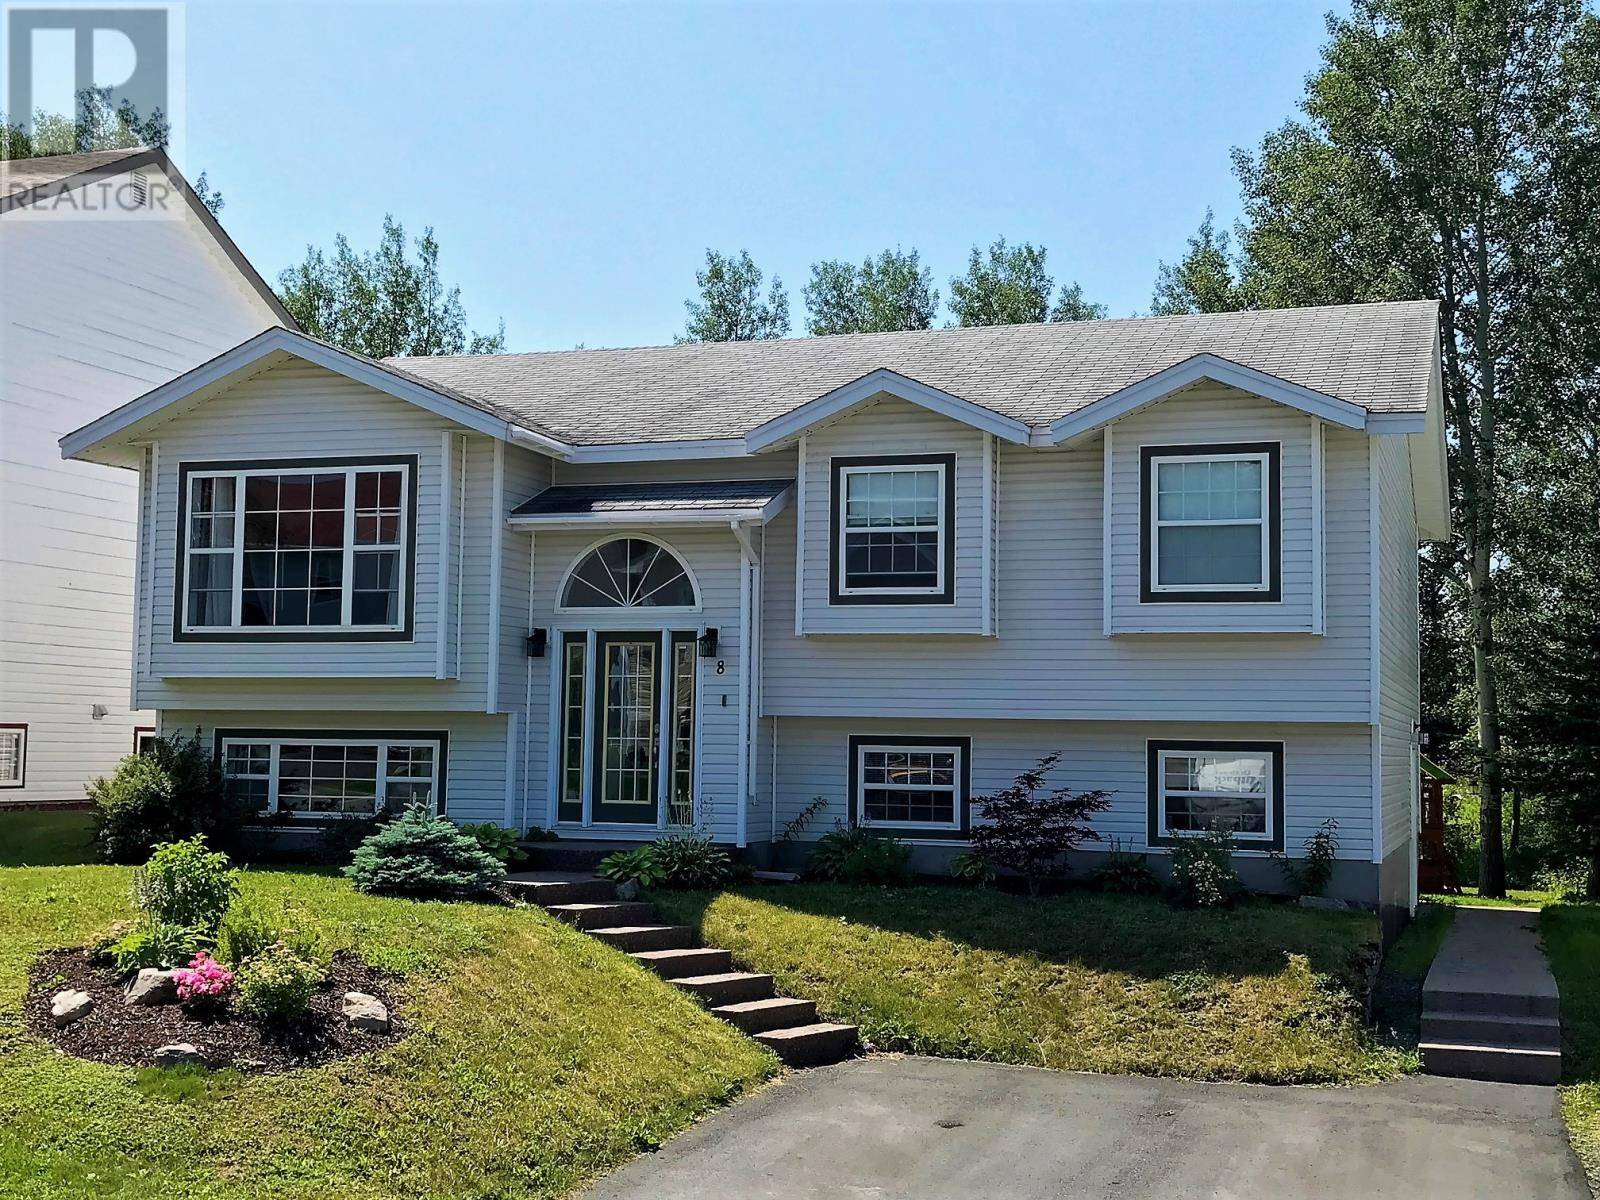 House for sale at 8 Hibernia Dr Clarenville Newfoundland - MLS: 1209714